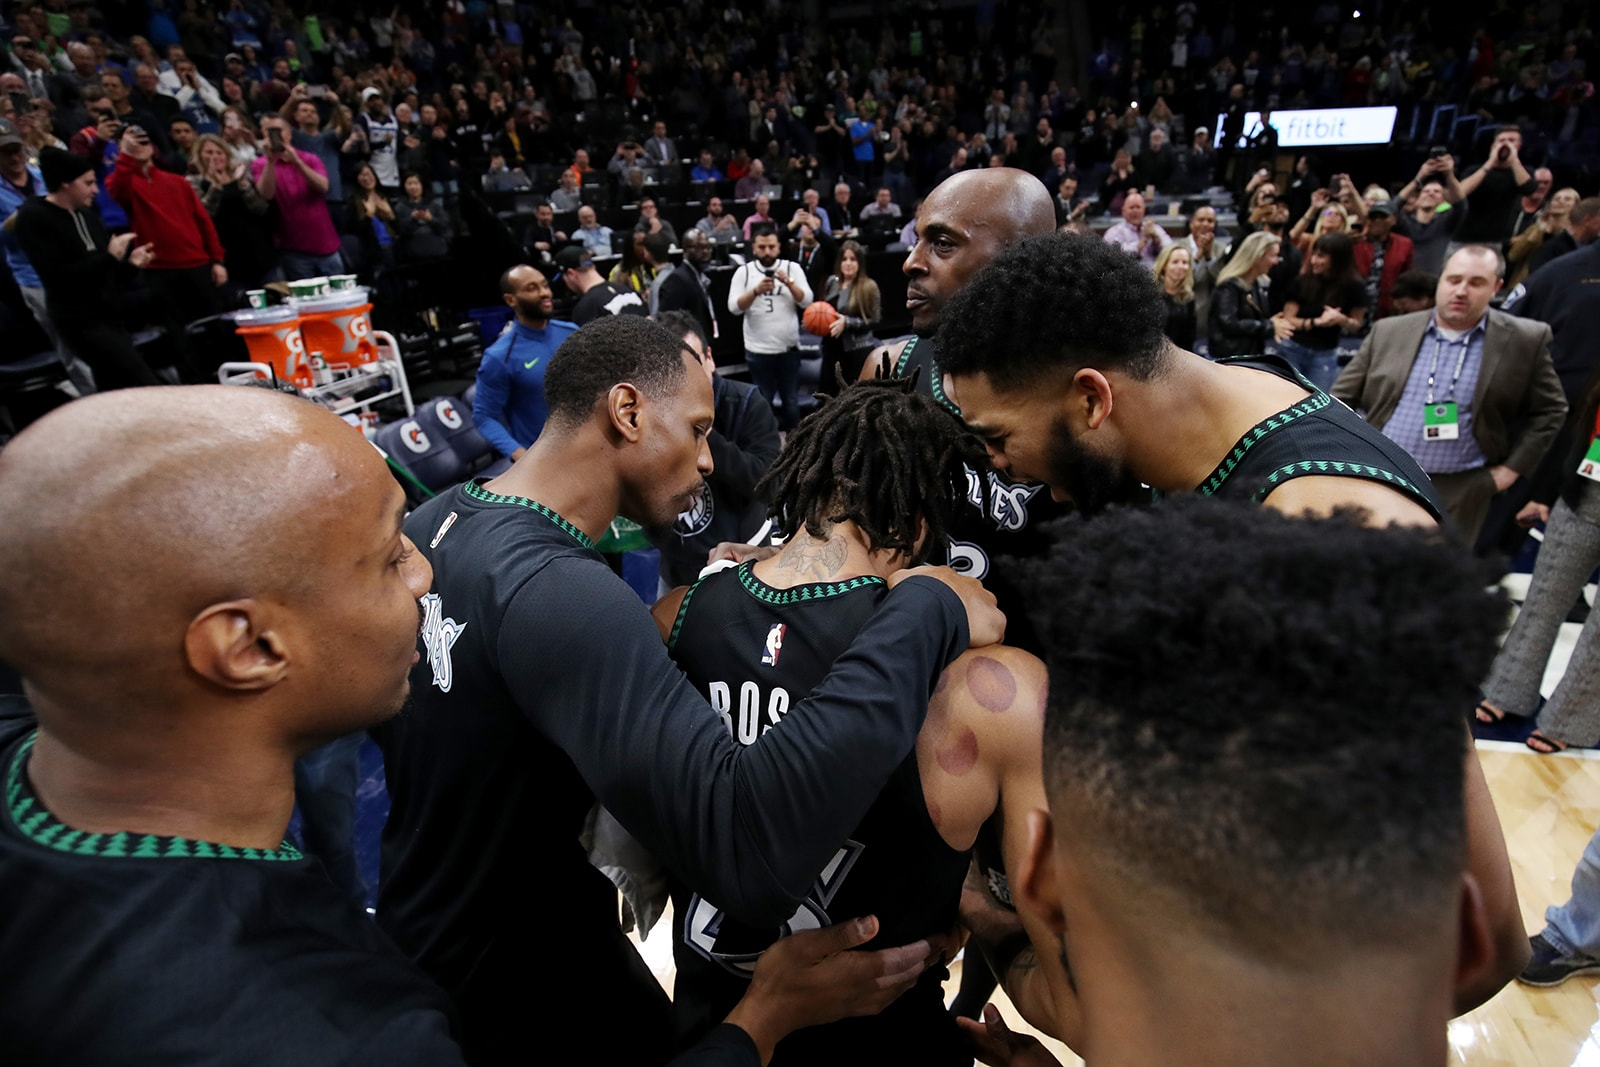 Rose's teammates embrace him after his 50 point game for the Timberwolves last season